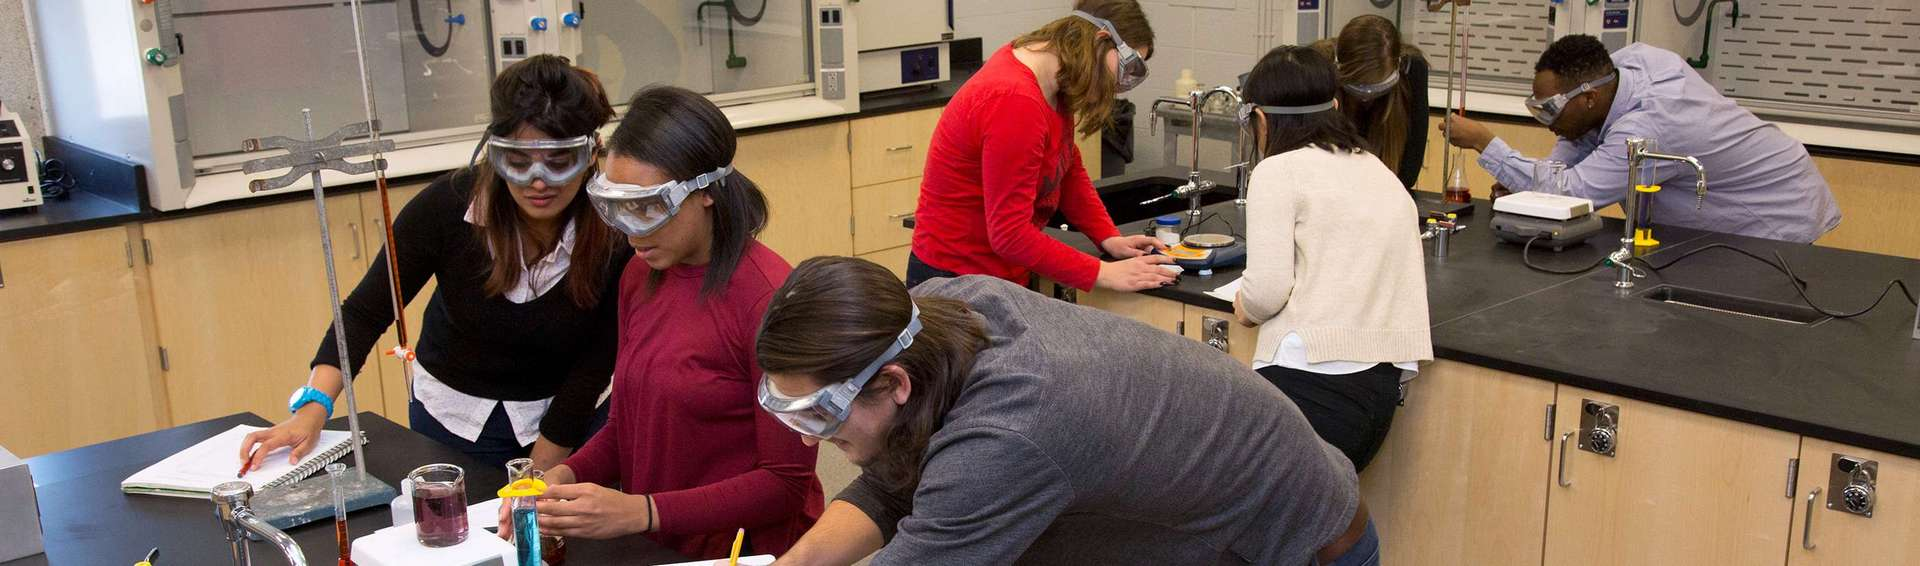 Two groups of students wearing goggles are working at separate benches in a modern undergraduate chemistry lab.